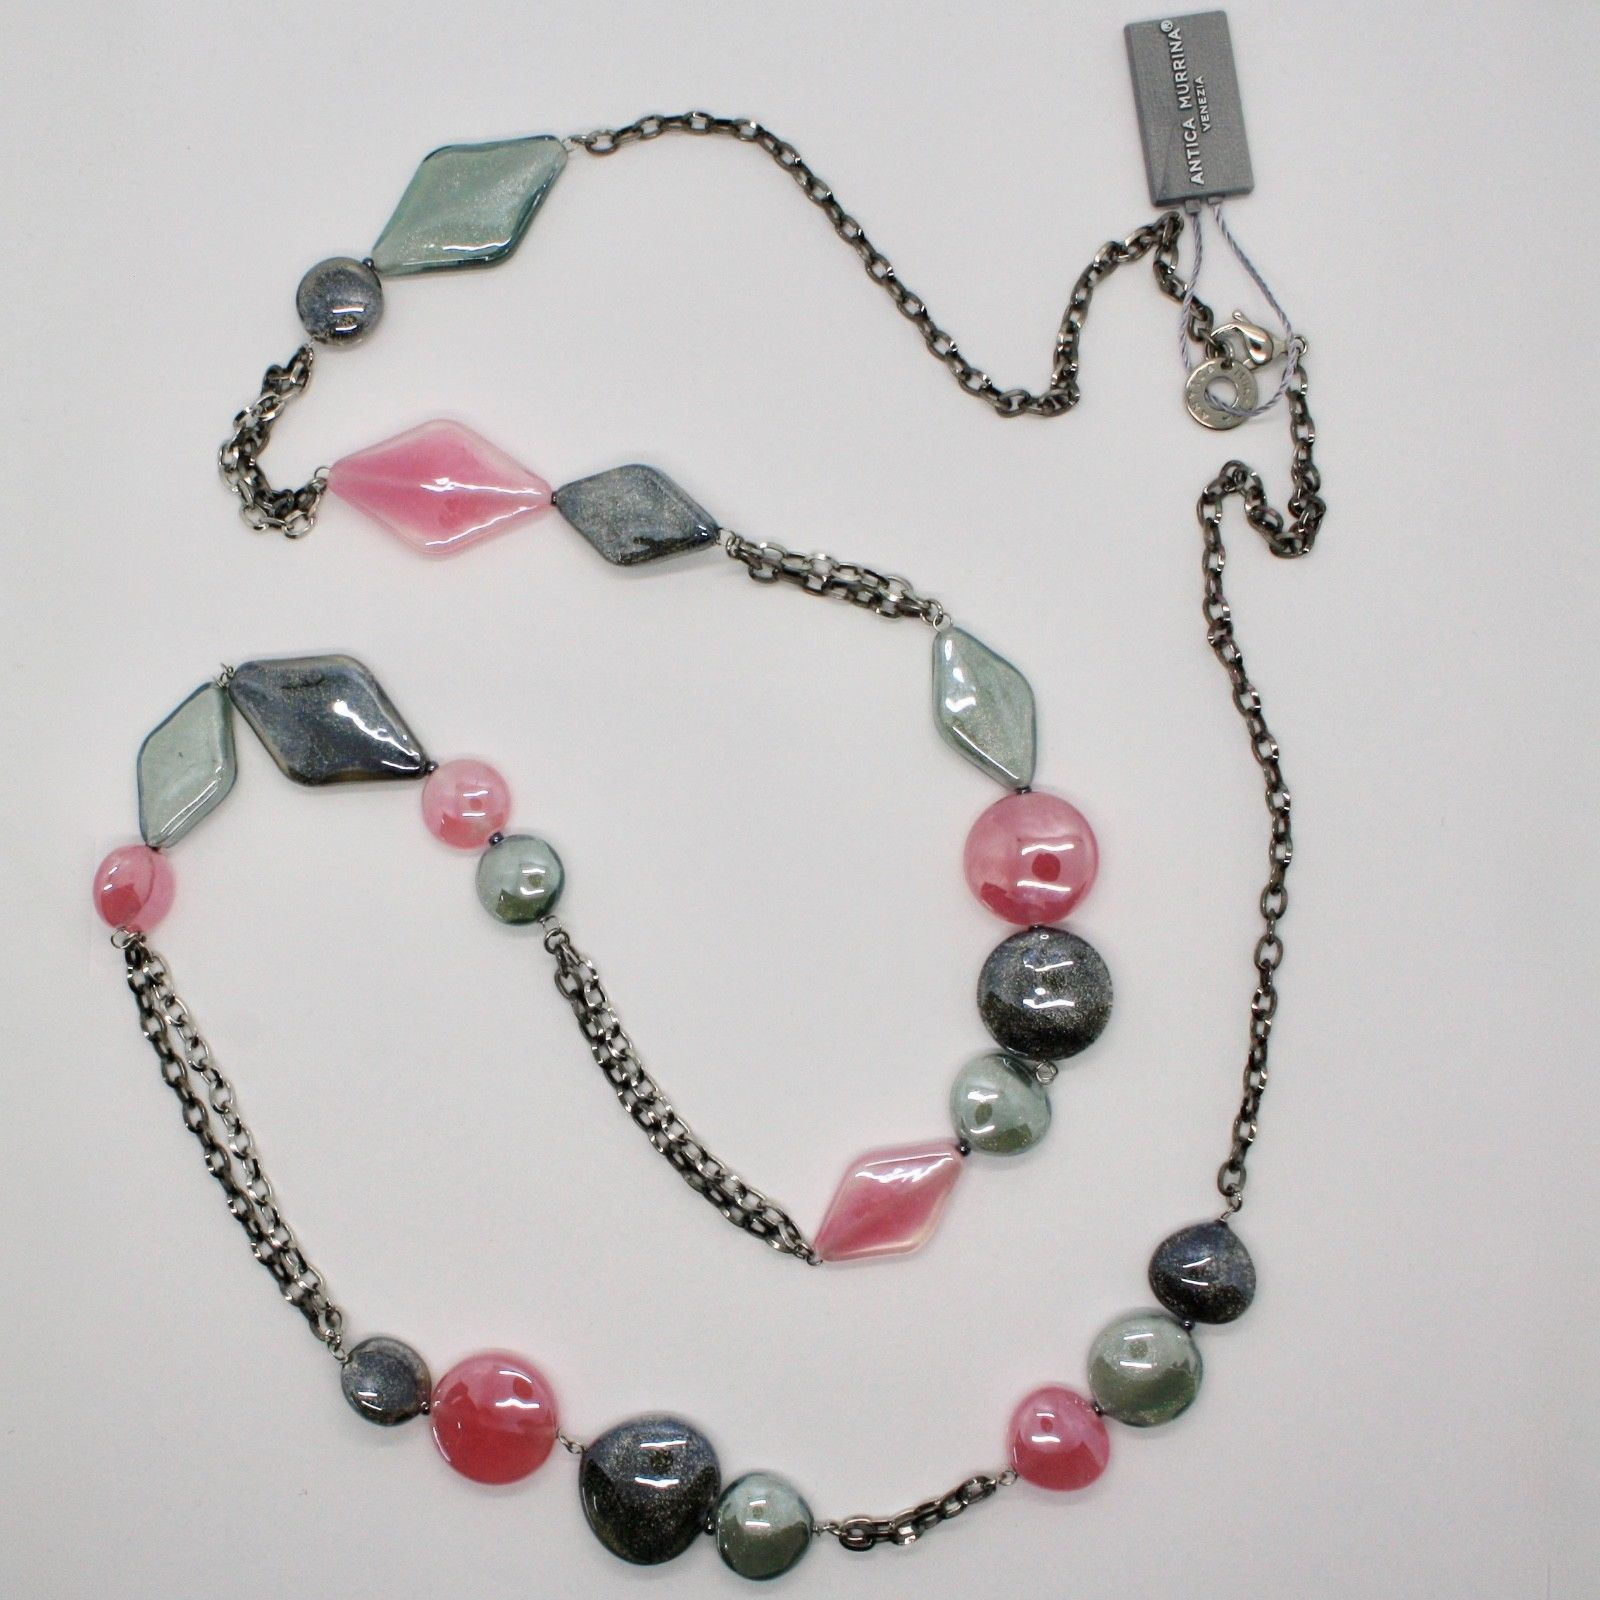 ANTICA MURRINA VENEZIA NECKLACE WITH MURANO GLASS PINK GRAY BLACK BEIGE COA85A45